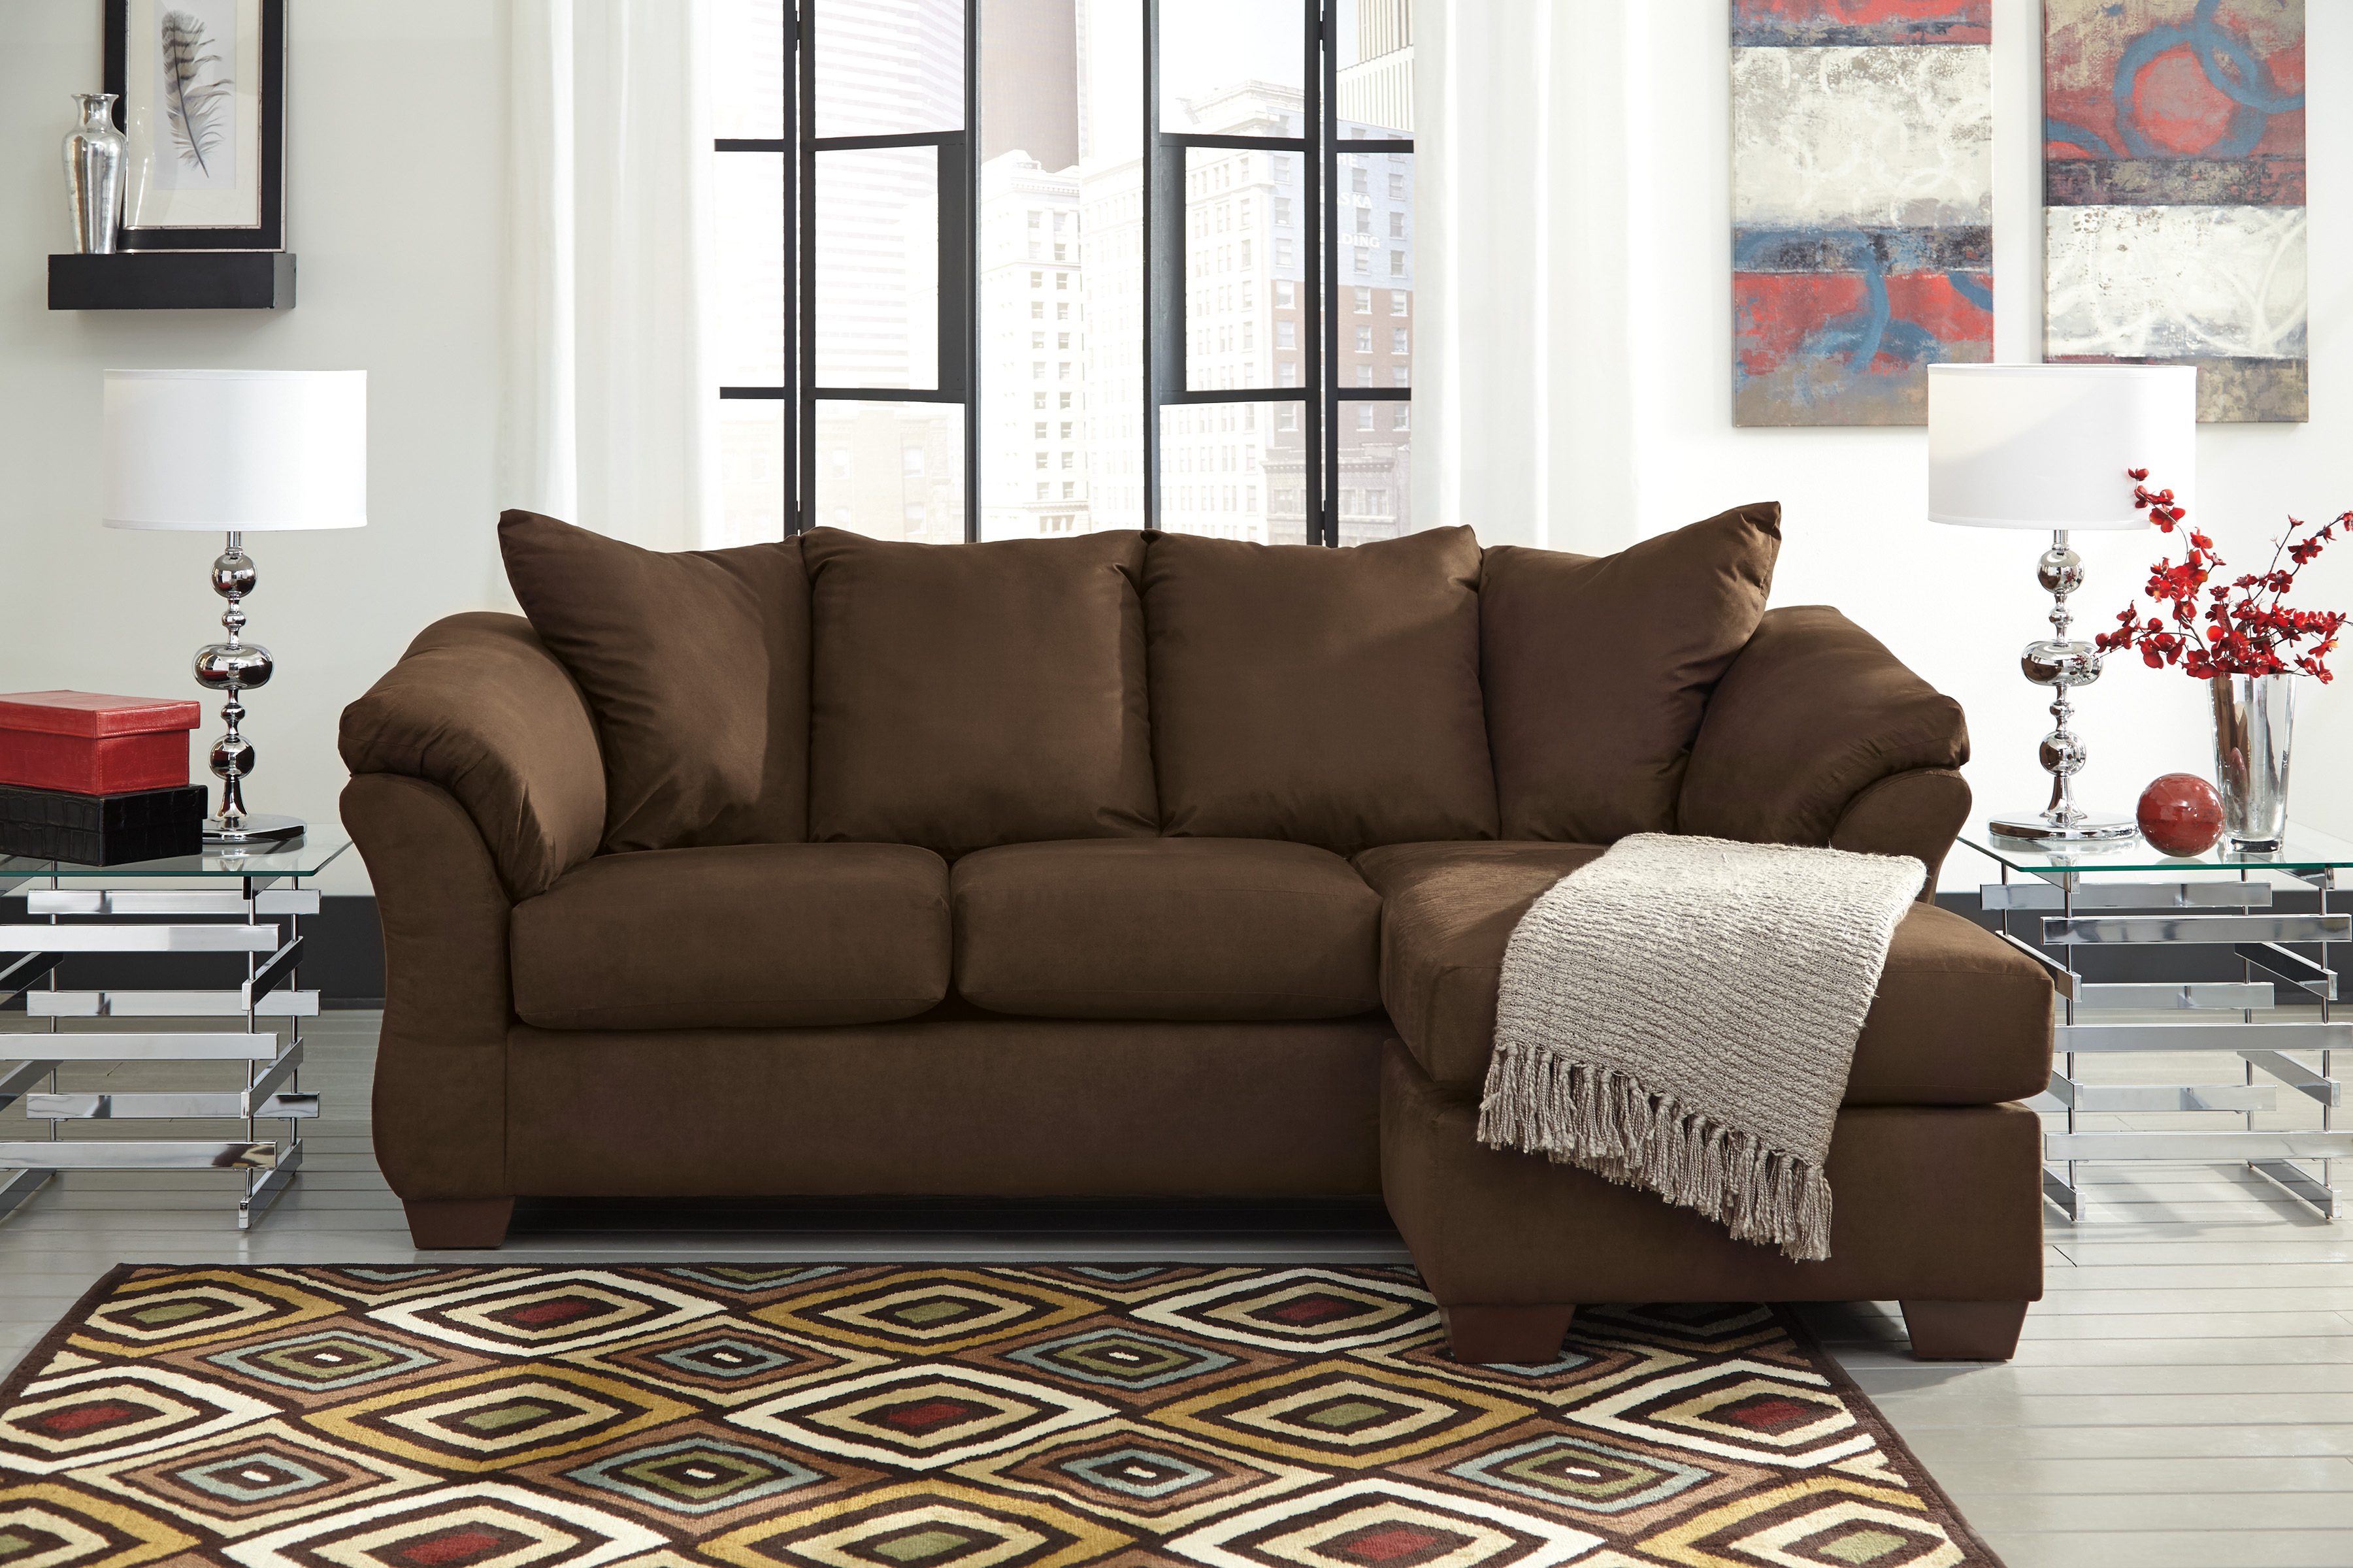 Phenomenal Majik Darcy Caf Sofa Chaise And Loveseat Rent To Own Dailytribune Chair Design For Home Dailytribuneorg